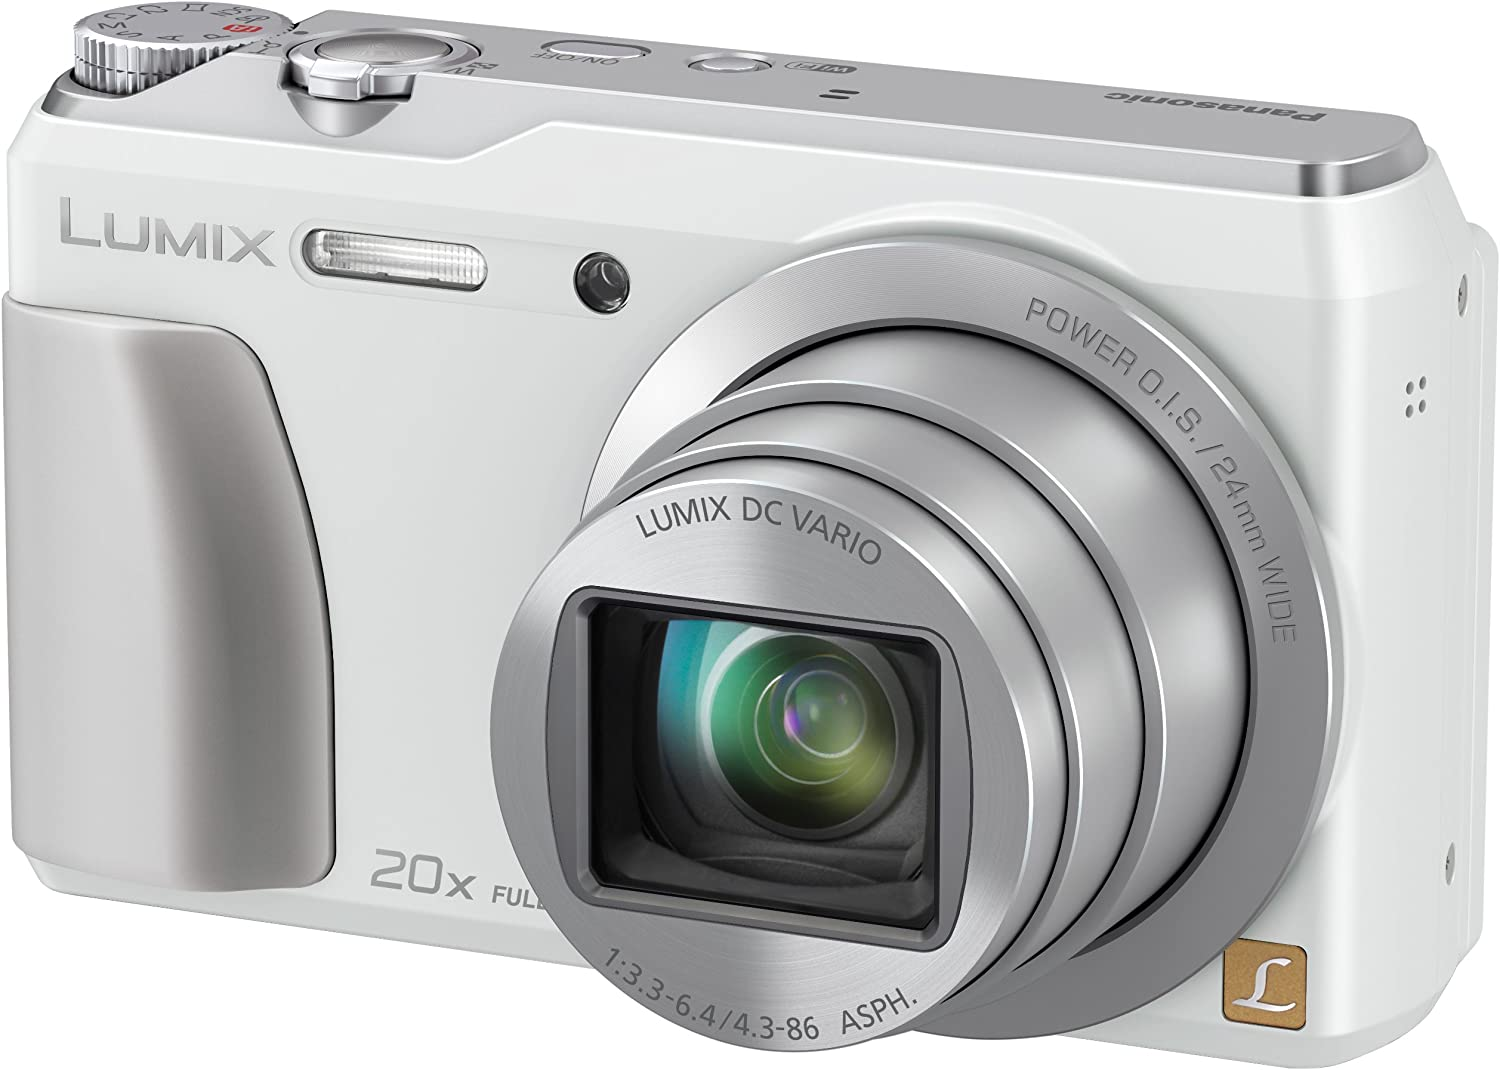 Panasonic DMC-ZS35W Digital Camera with White Excellence LCD TFT Special price 3.0-Inch